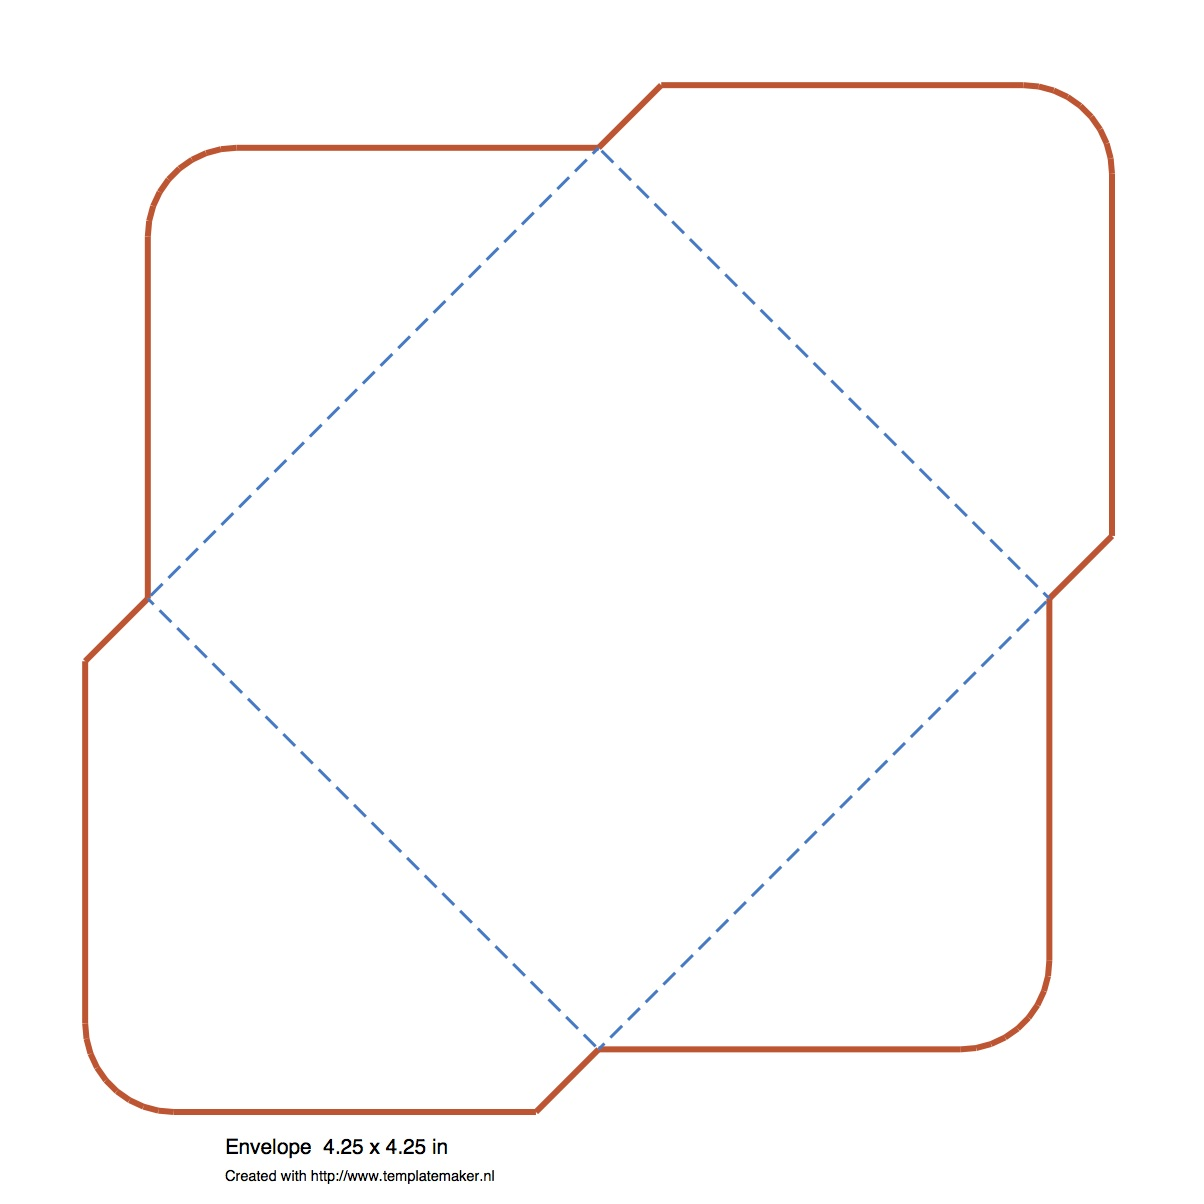 Epbot diy overwatch pop up card free templates just plug in your dimensions and the site will spit out a free printable template for envelopes boxes bags seriously maxwellsz